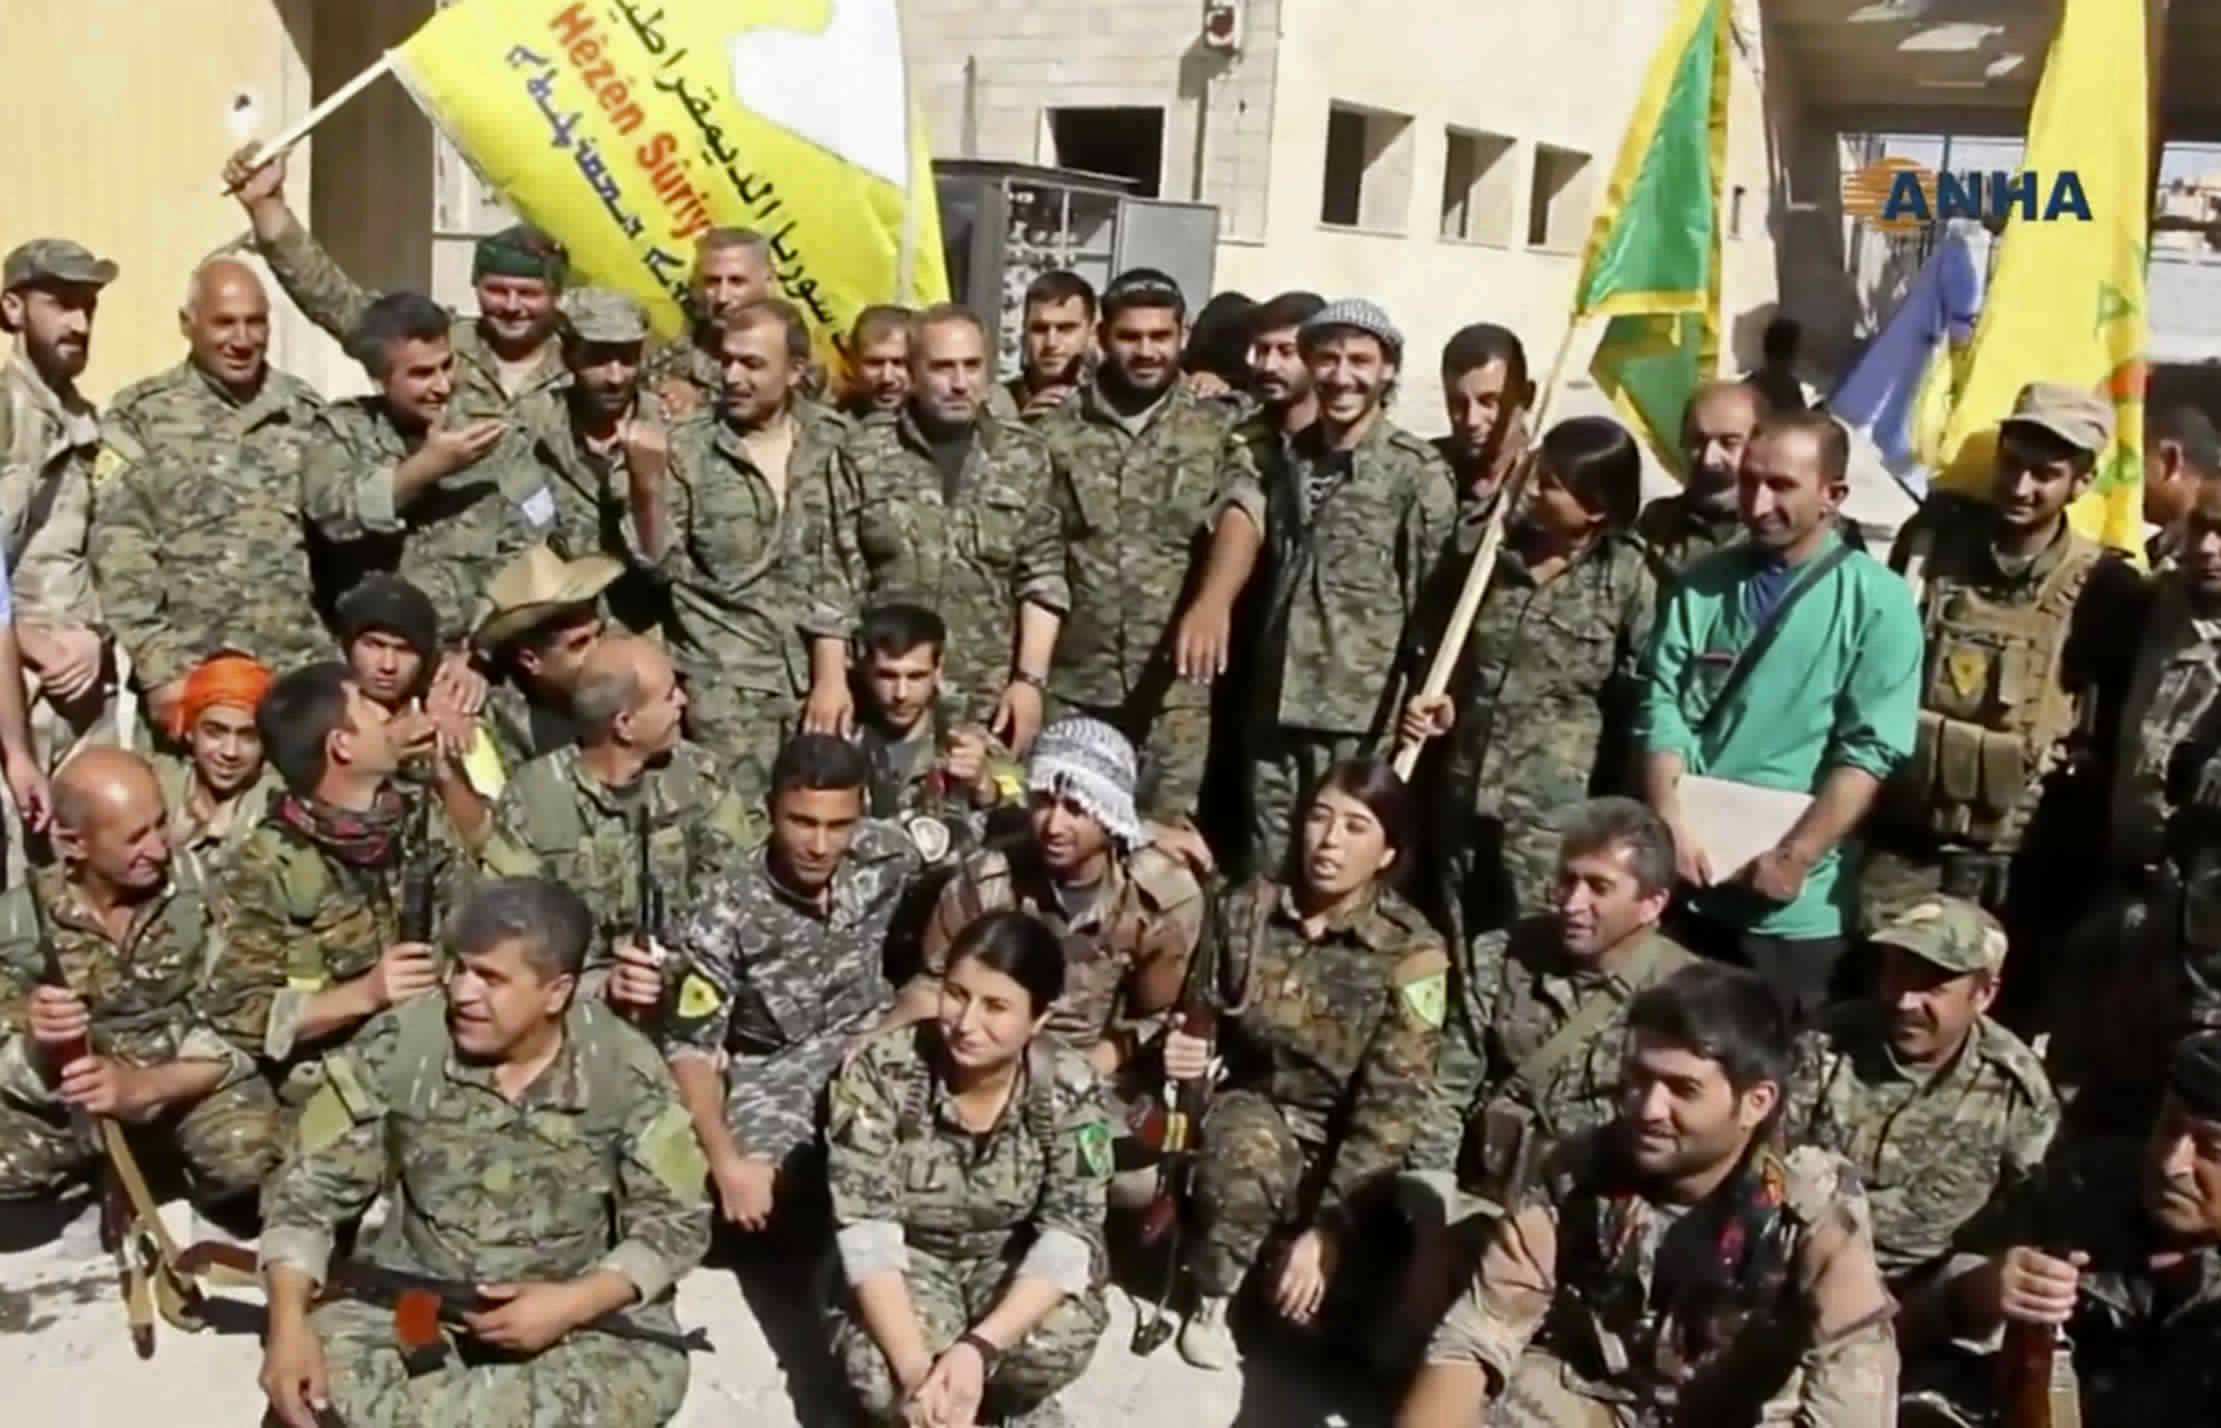 This frame grab from video released Tuesday and provided by Hawar News Agency, a Syrian Kurdish activist-run media group, shows fighters from the U.S.-backed Syrian Democratic Forces (SDF) celebrating their victory in Raqqa, Syria. U.S.-backed Syrian forces liberated the city of Raqqa from Islamic State militants on Tuesday, a senior commander for the force said, adding that clearing operations were under way to remove land mines left behind and search for the extremist group's sleeper cells.